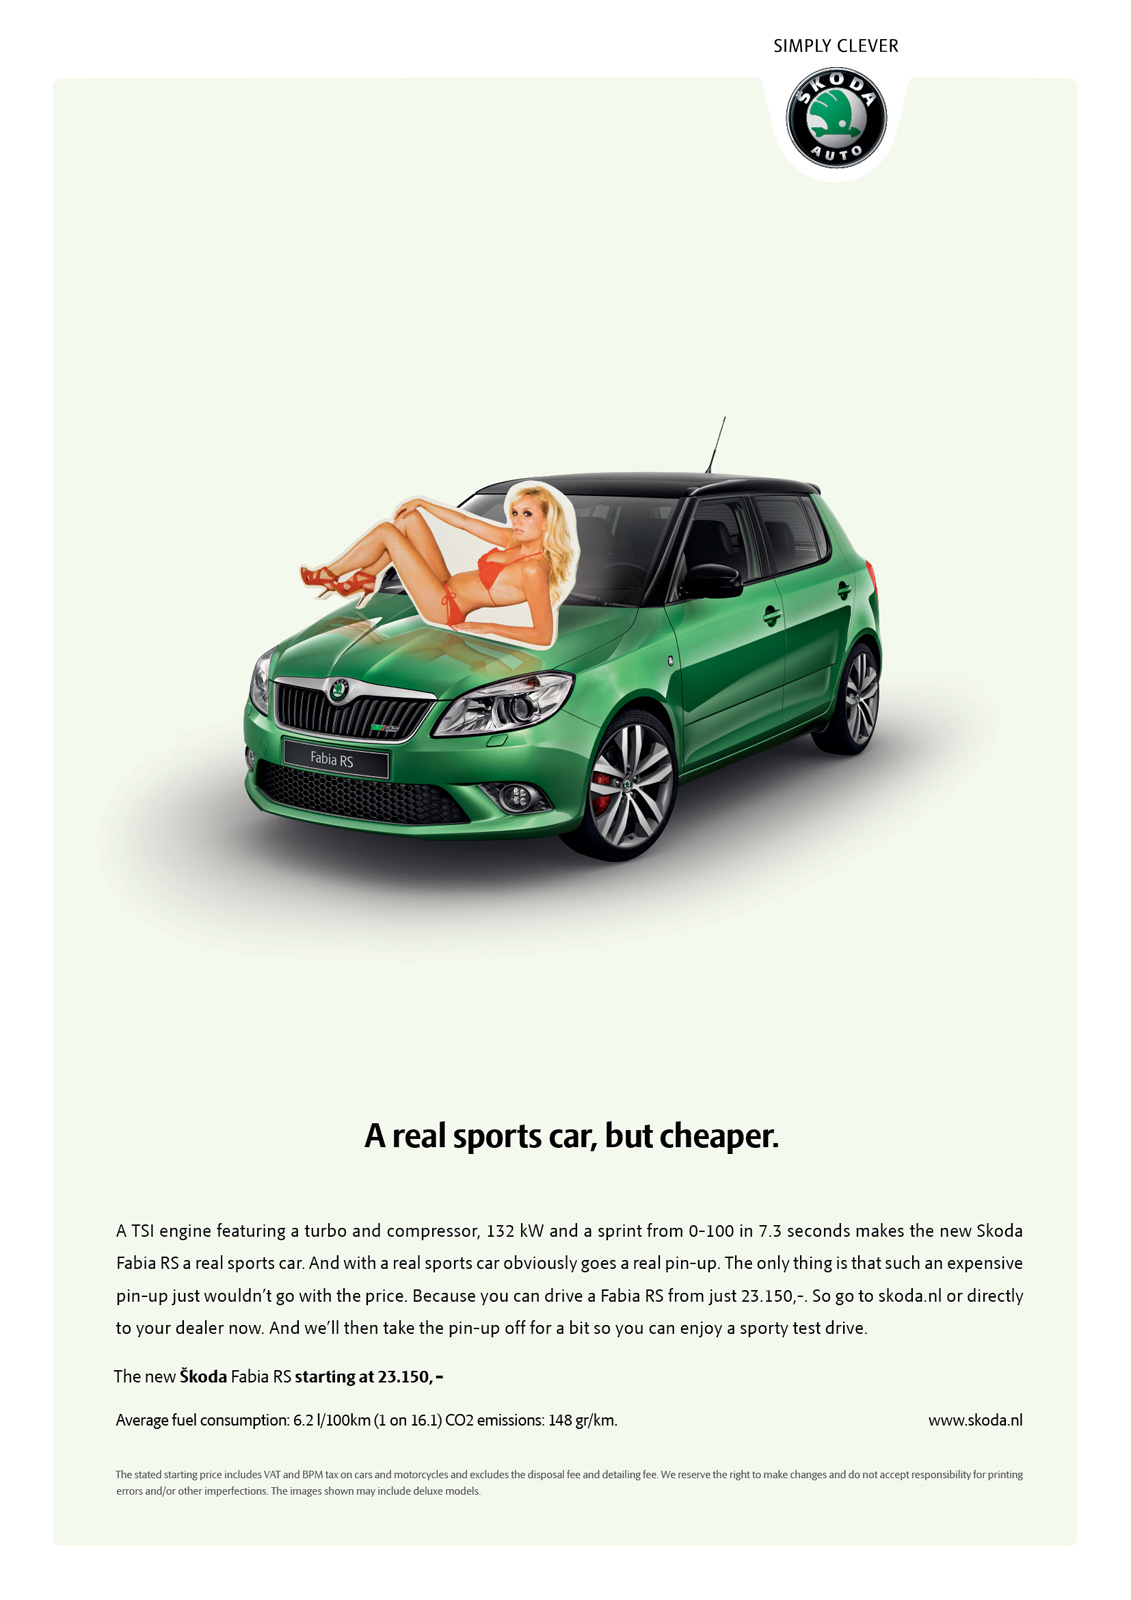 Skoda print advert by selmore a real sports car but cheaper ads skoda print ad a real sports car but cheaper publicscrutiny Choice Image